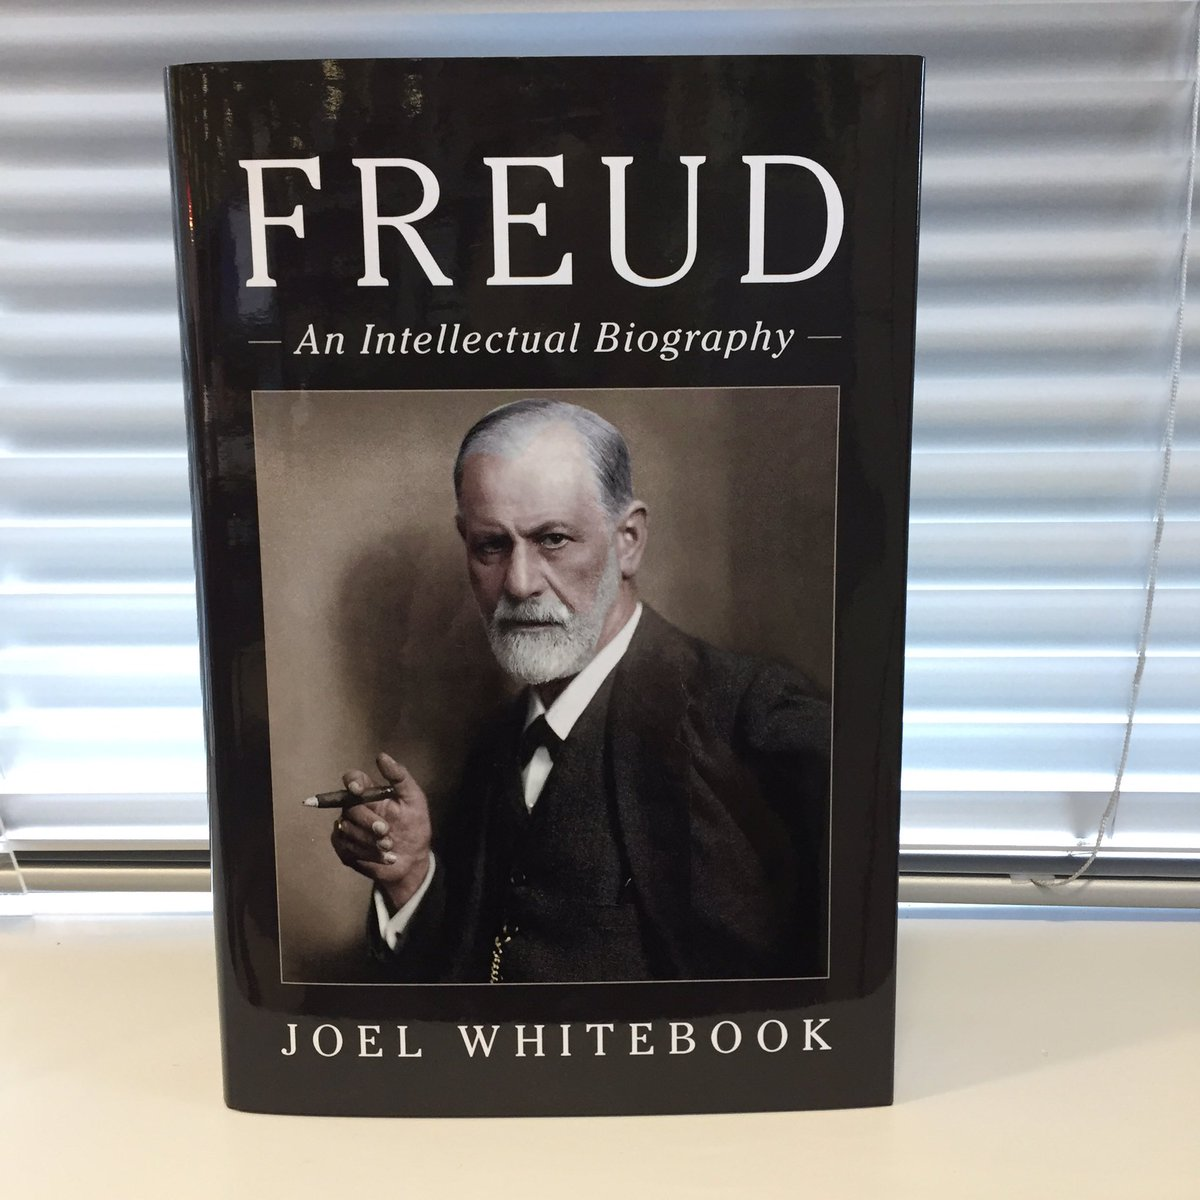 Image result for Joel Whitebook Freud